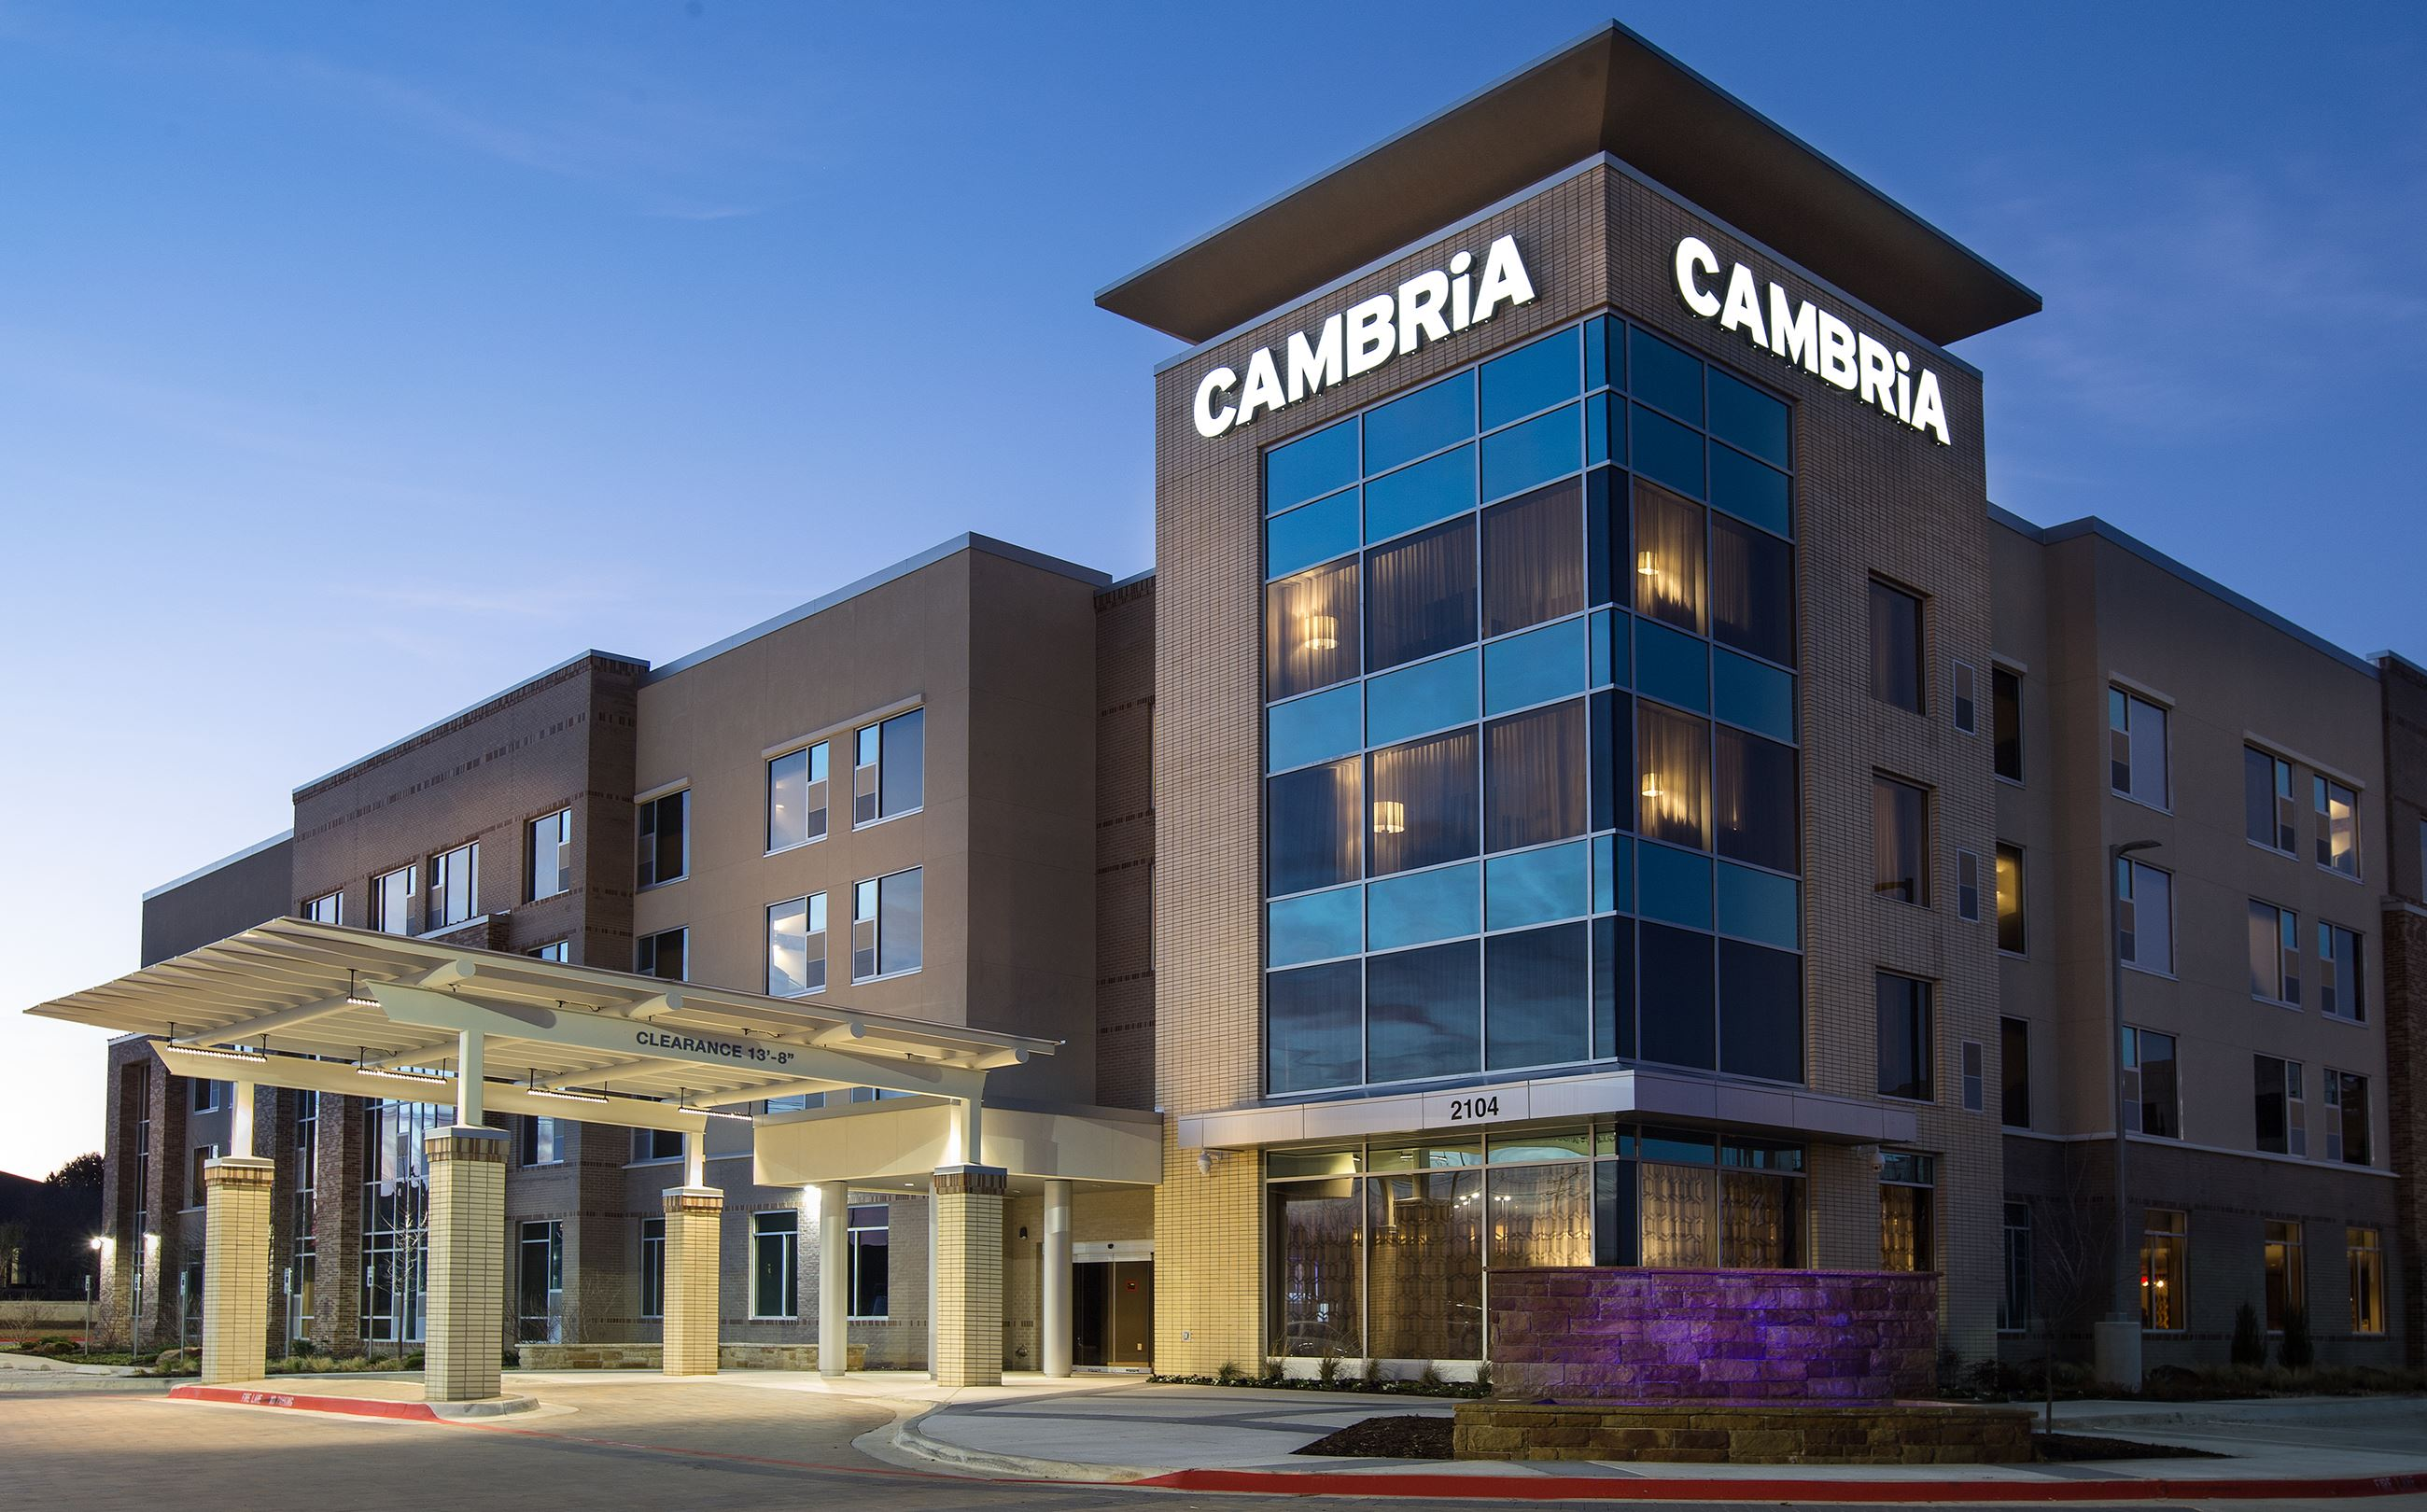 Experience Contemporary Comforts While Feeling At Home In Southlake The Cambria Dfw North This Hotel Channels Local Charm